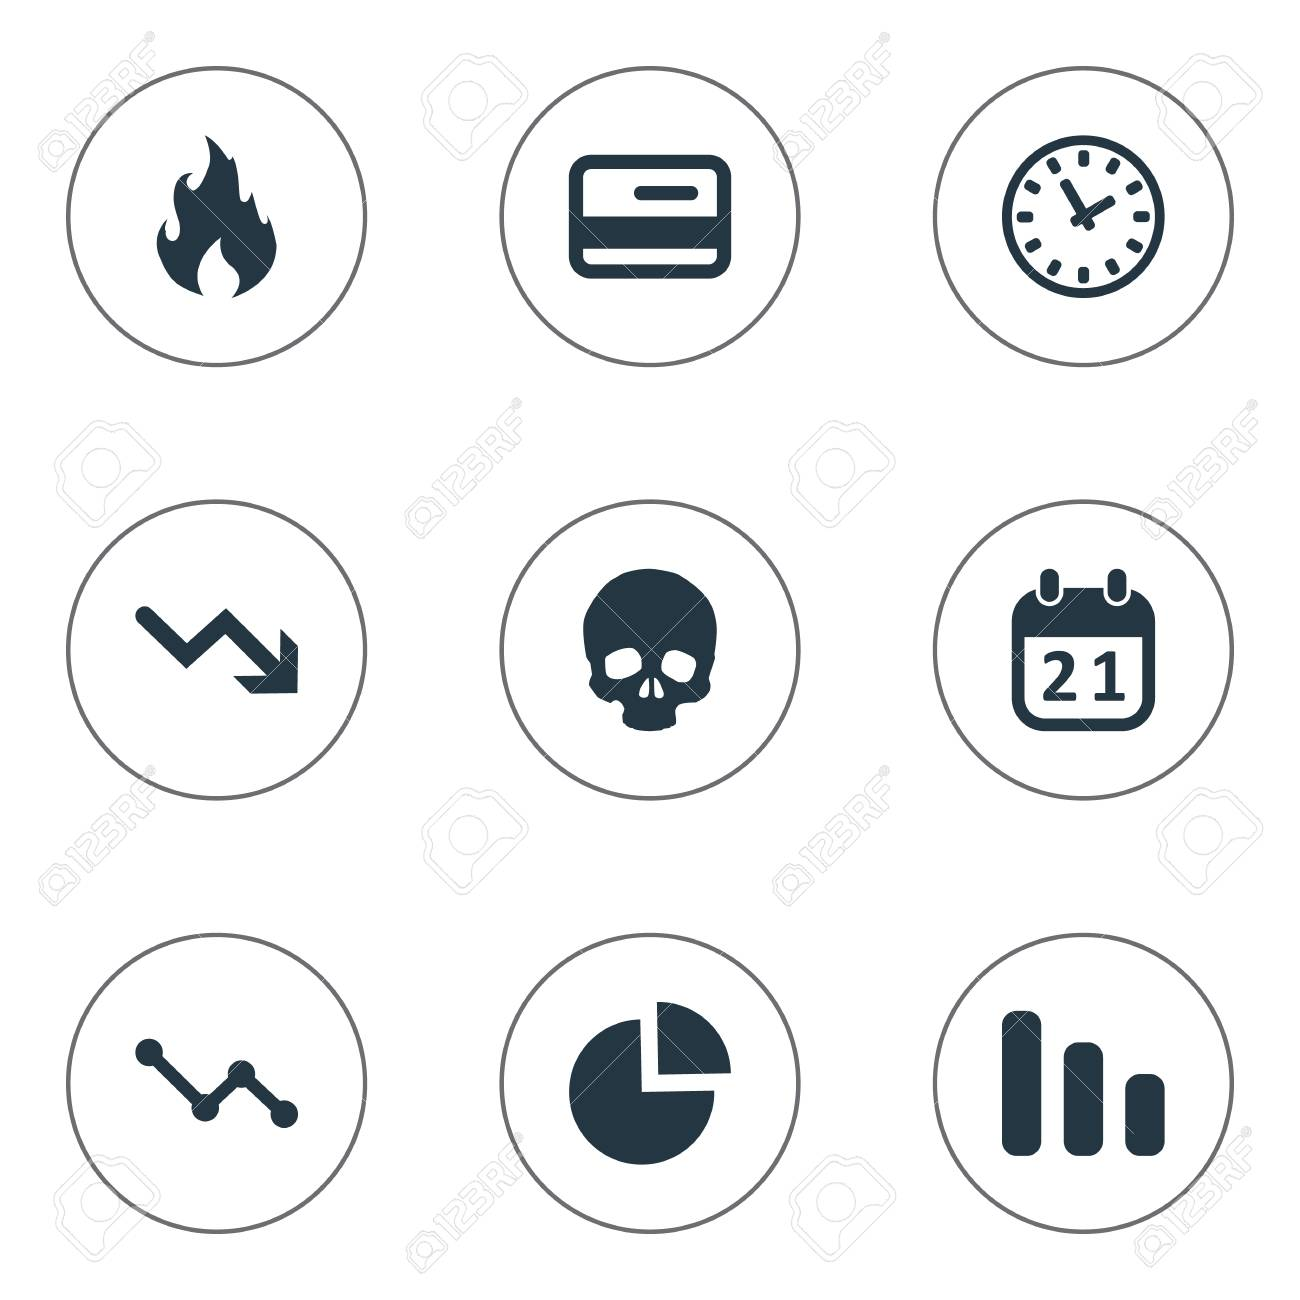 hight resolution of vector vector illustration set of simple trouble icons elements circular diagram agenda clock and other synonyms skull reminder and blaze